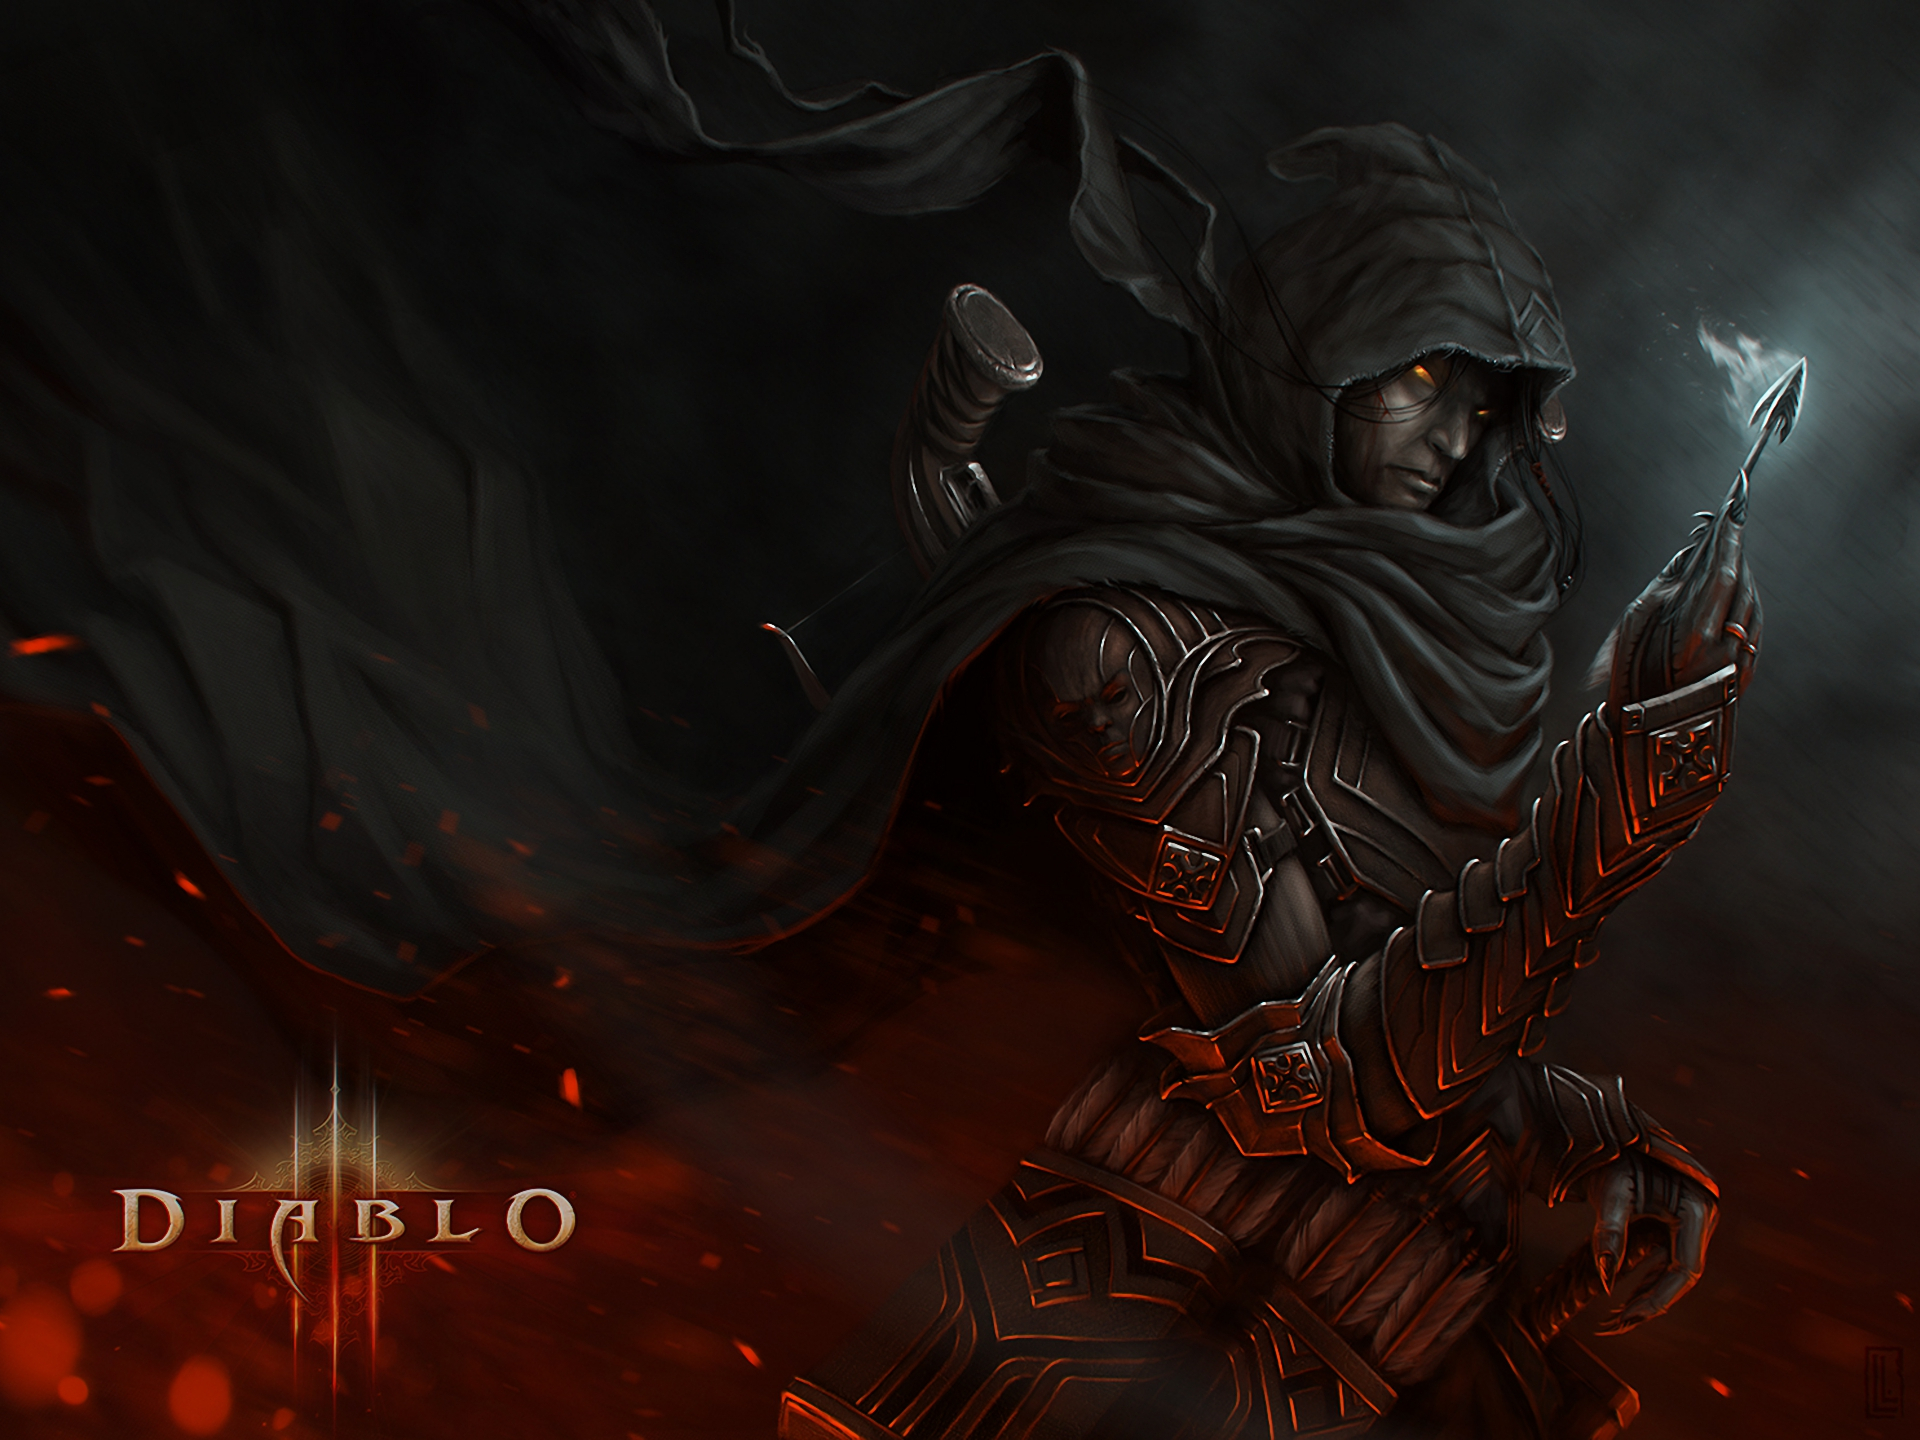 Diablo 3 alpha demo download